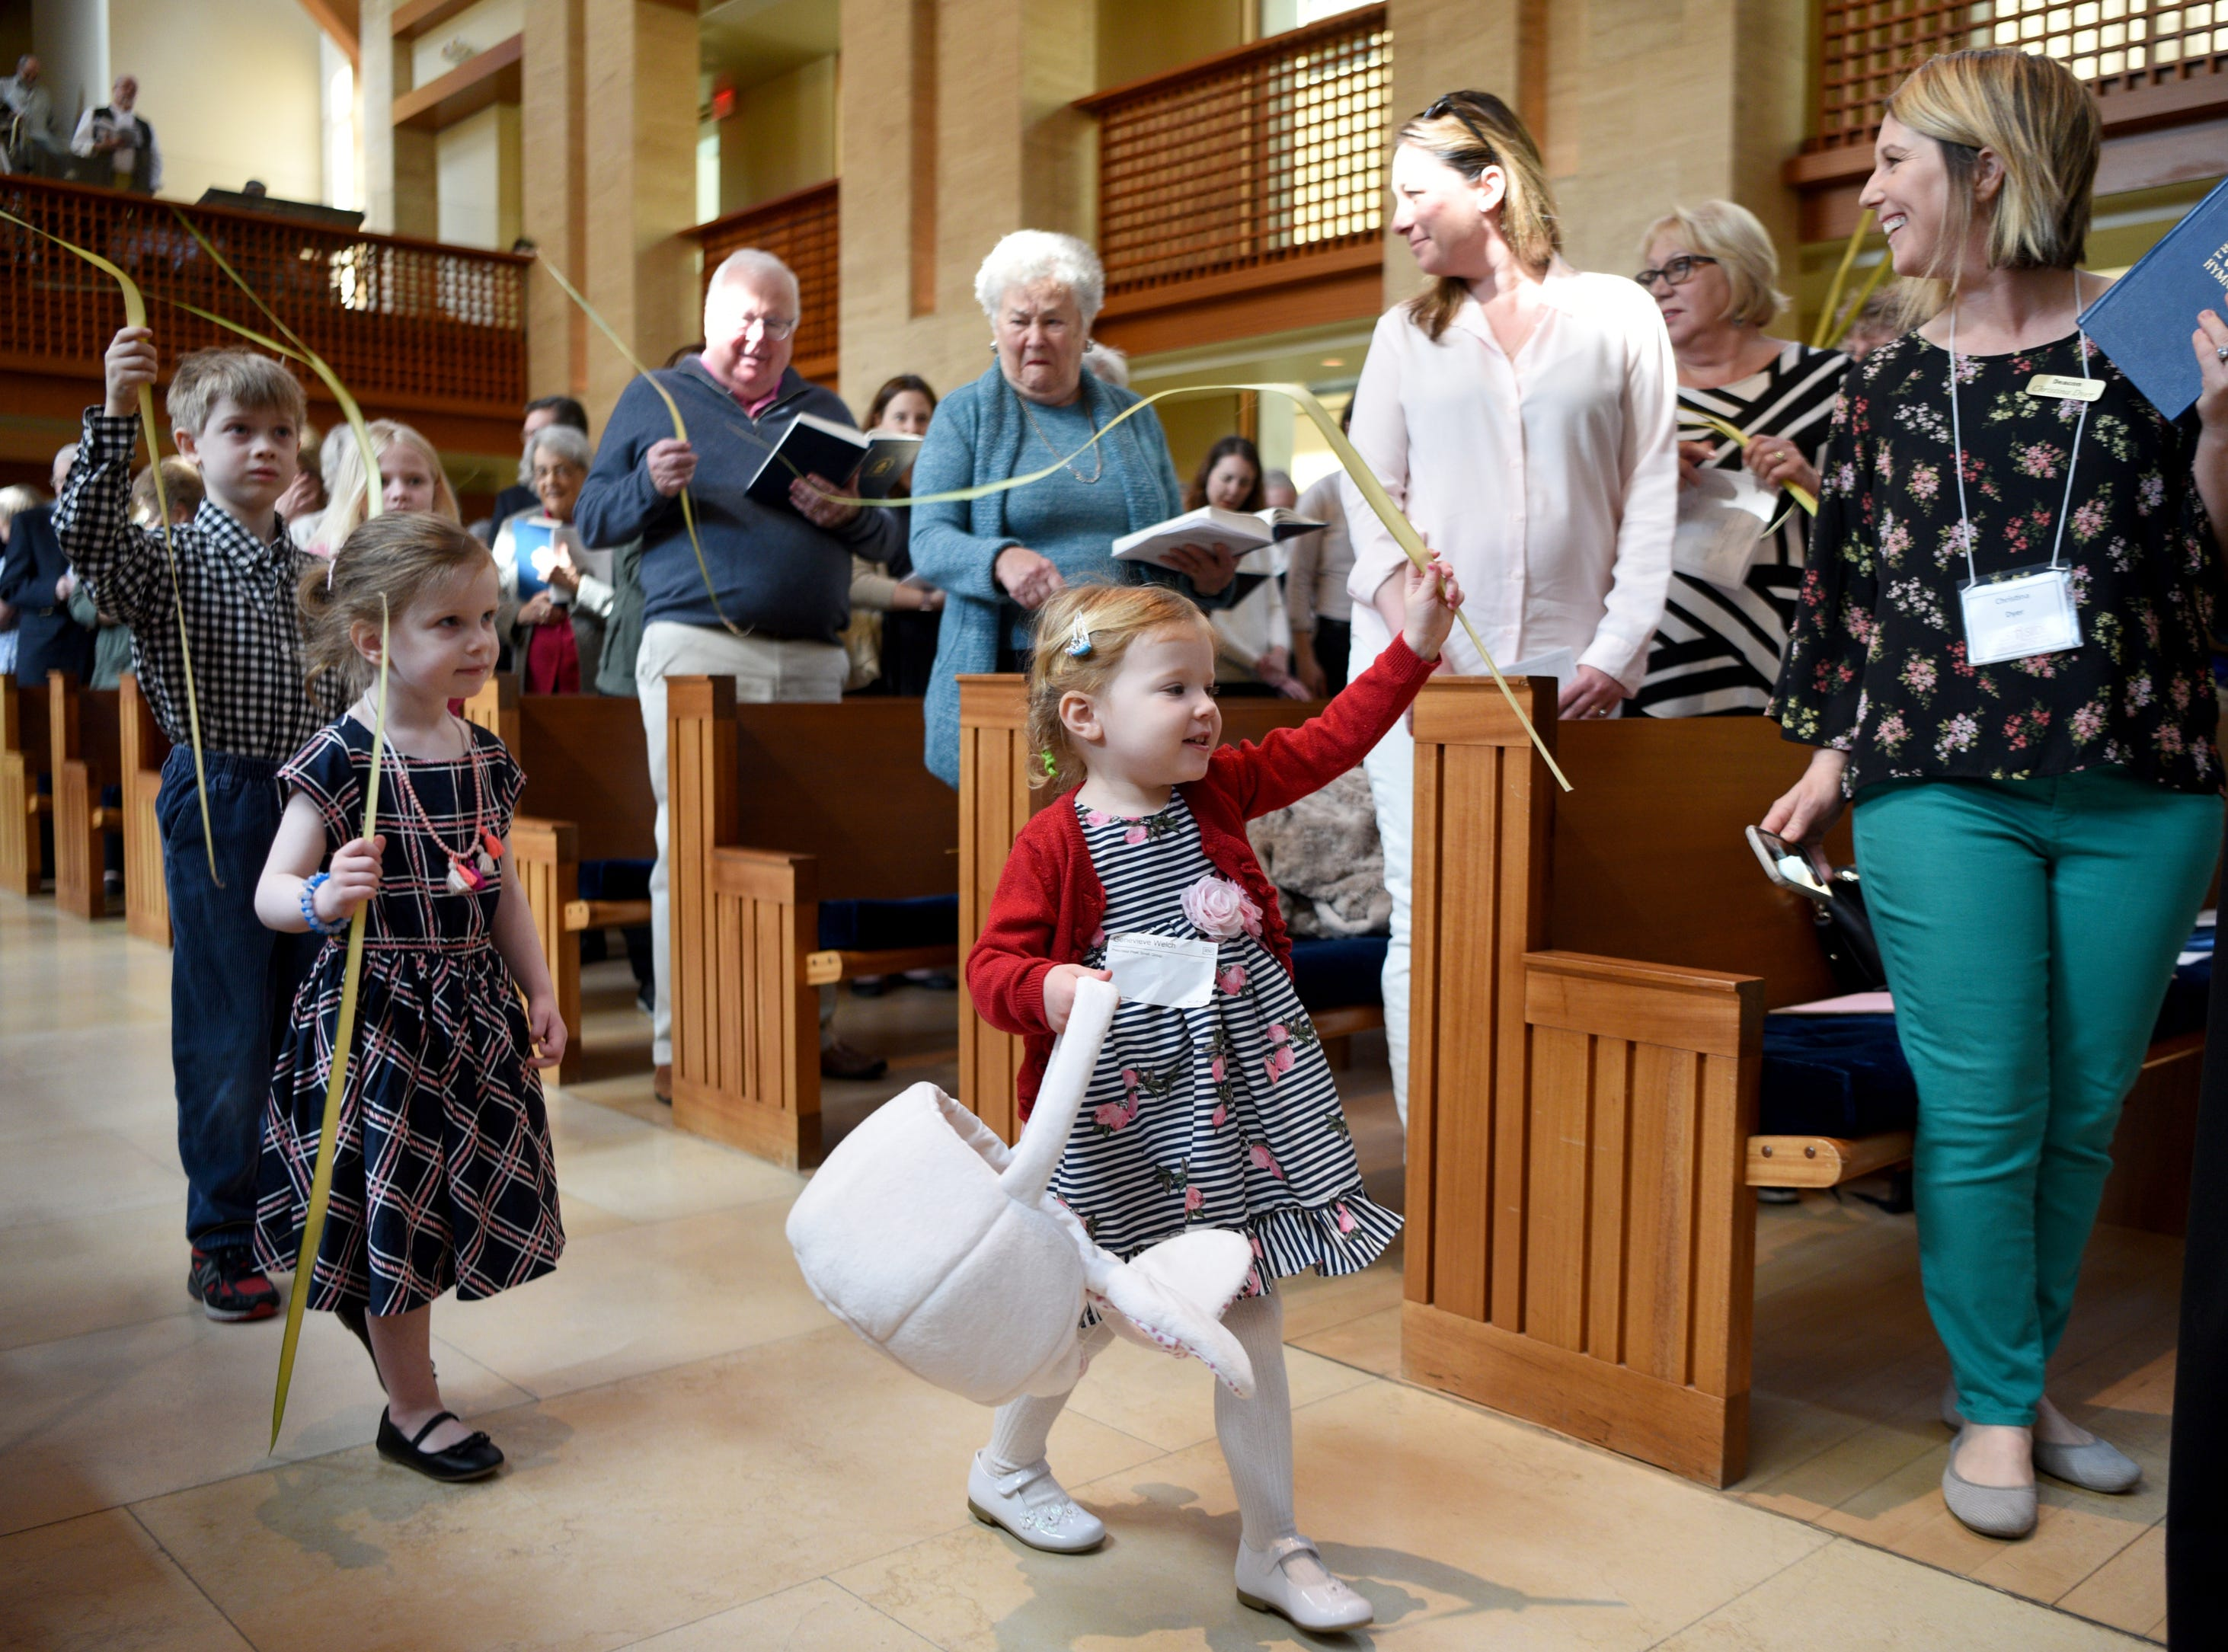 West Side Presbyterian Church in Ridgewood commemorated Palm Sunday on April 14, 2019 during services. Children of the congregation proceed into services waving palms.